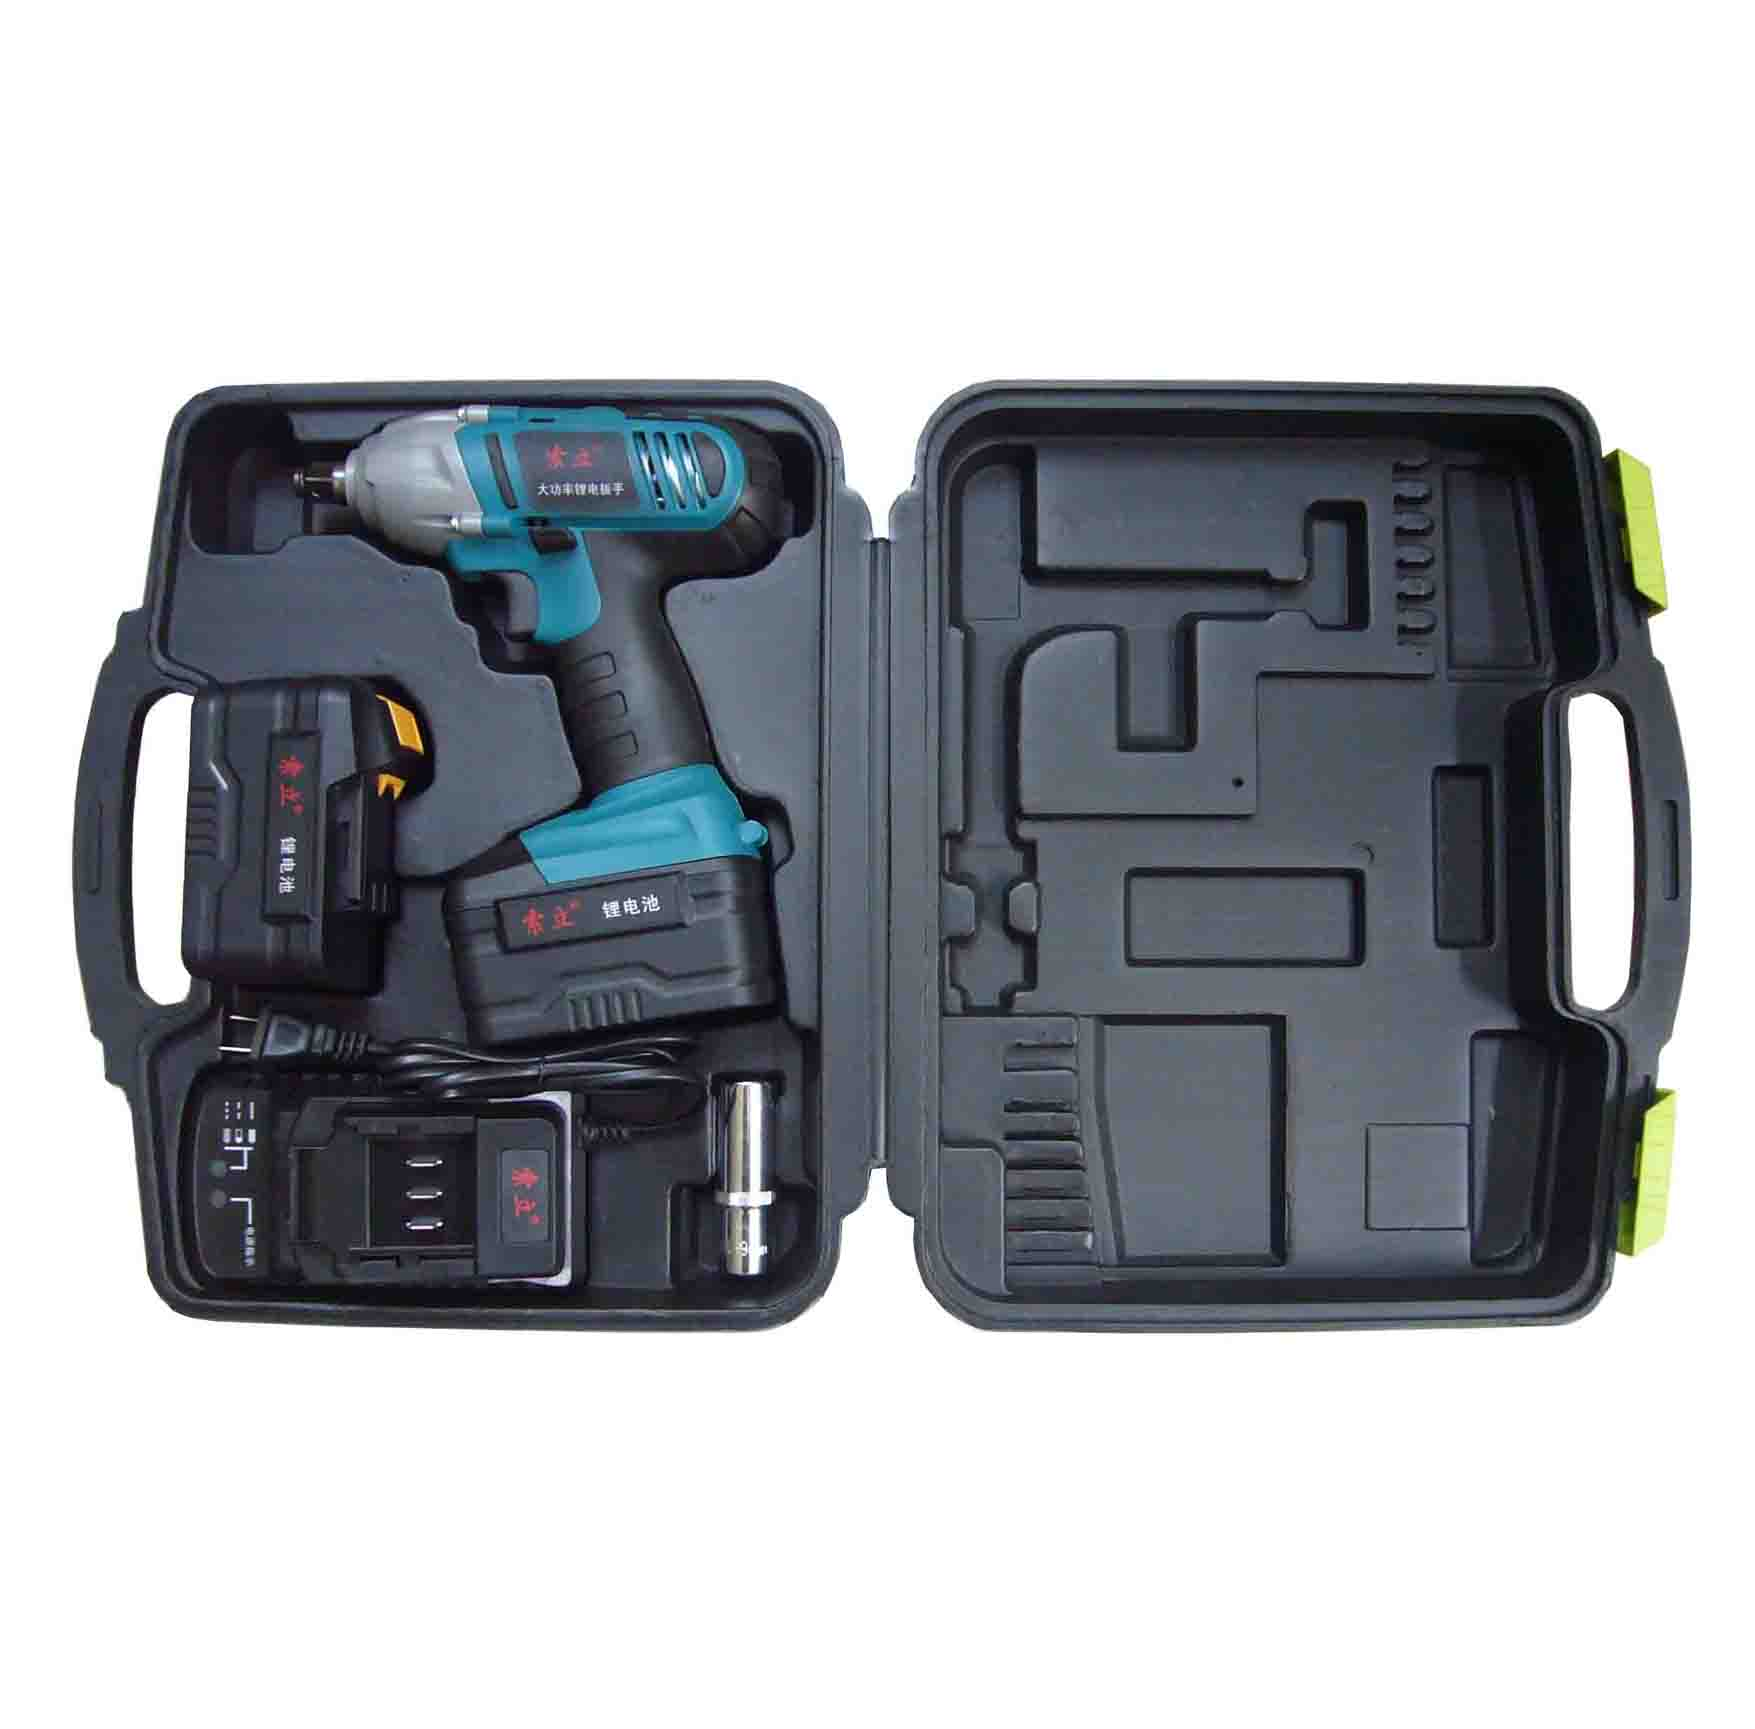 SND245 li-ion battery   Cordless impact wrench